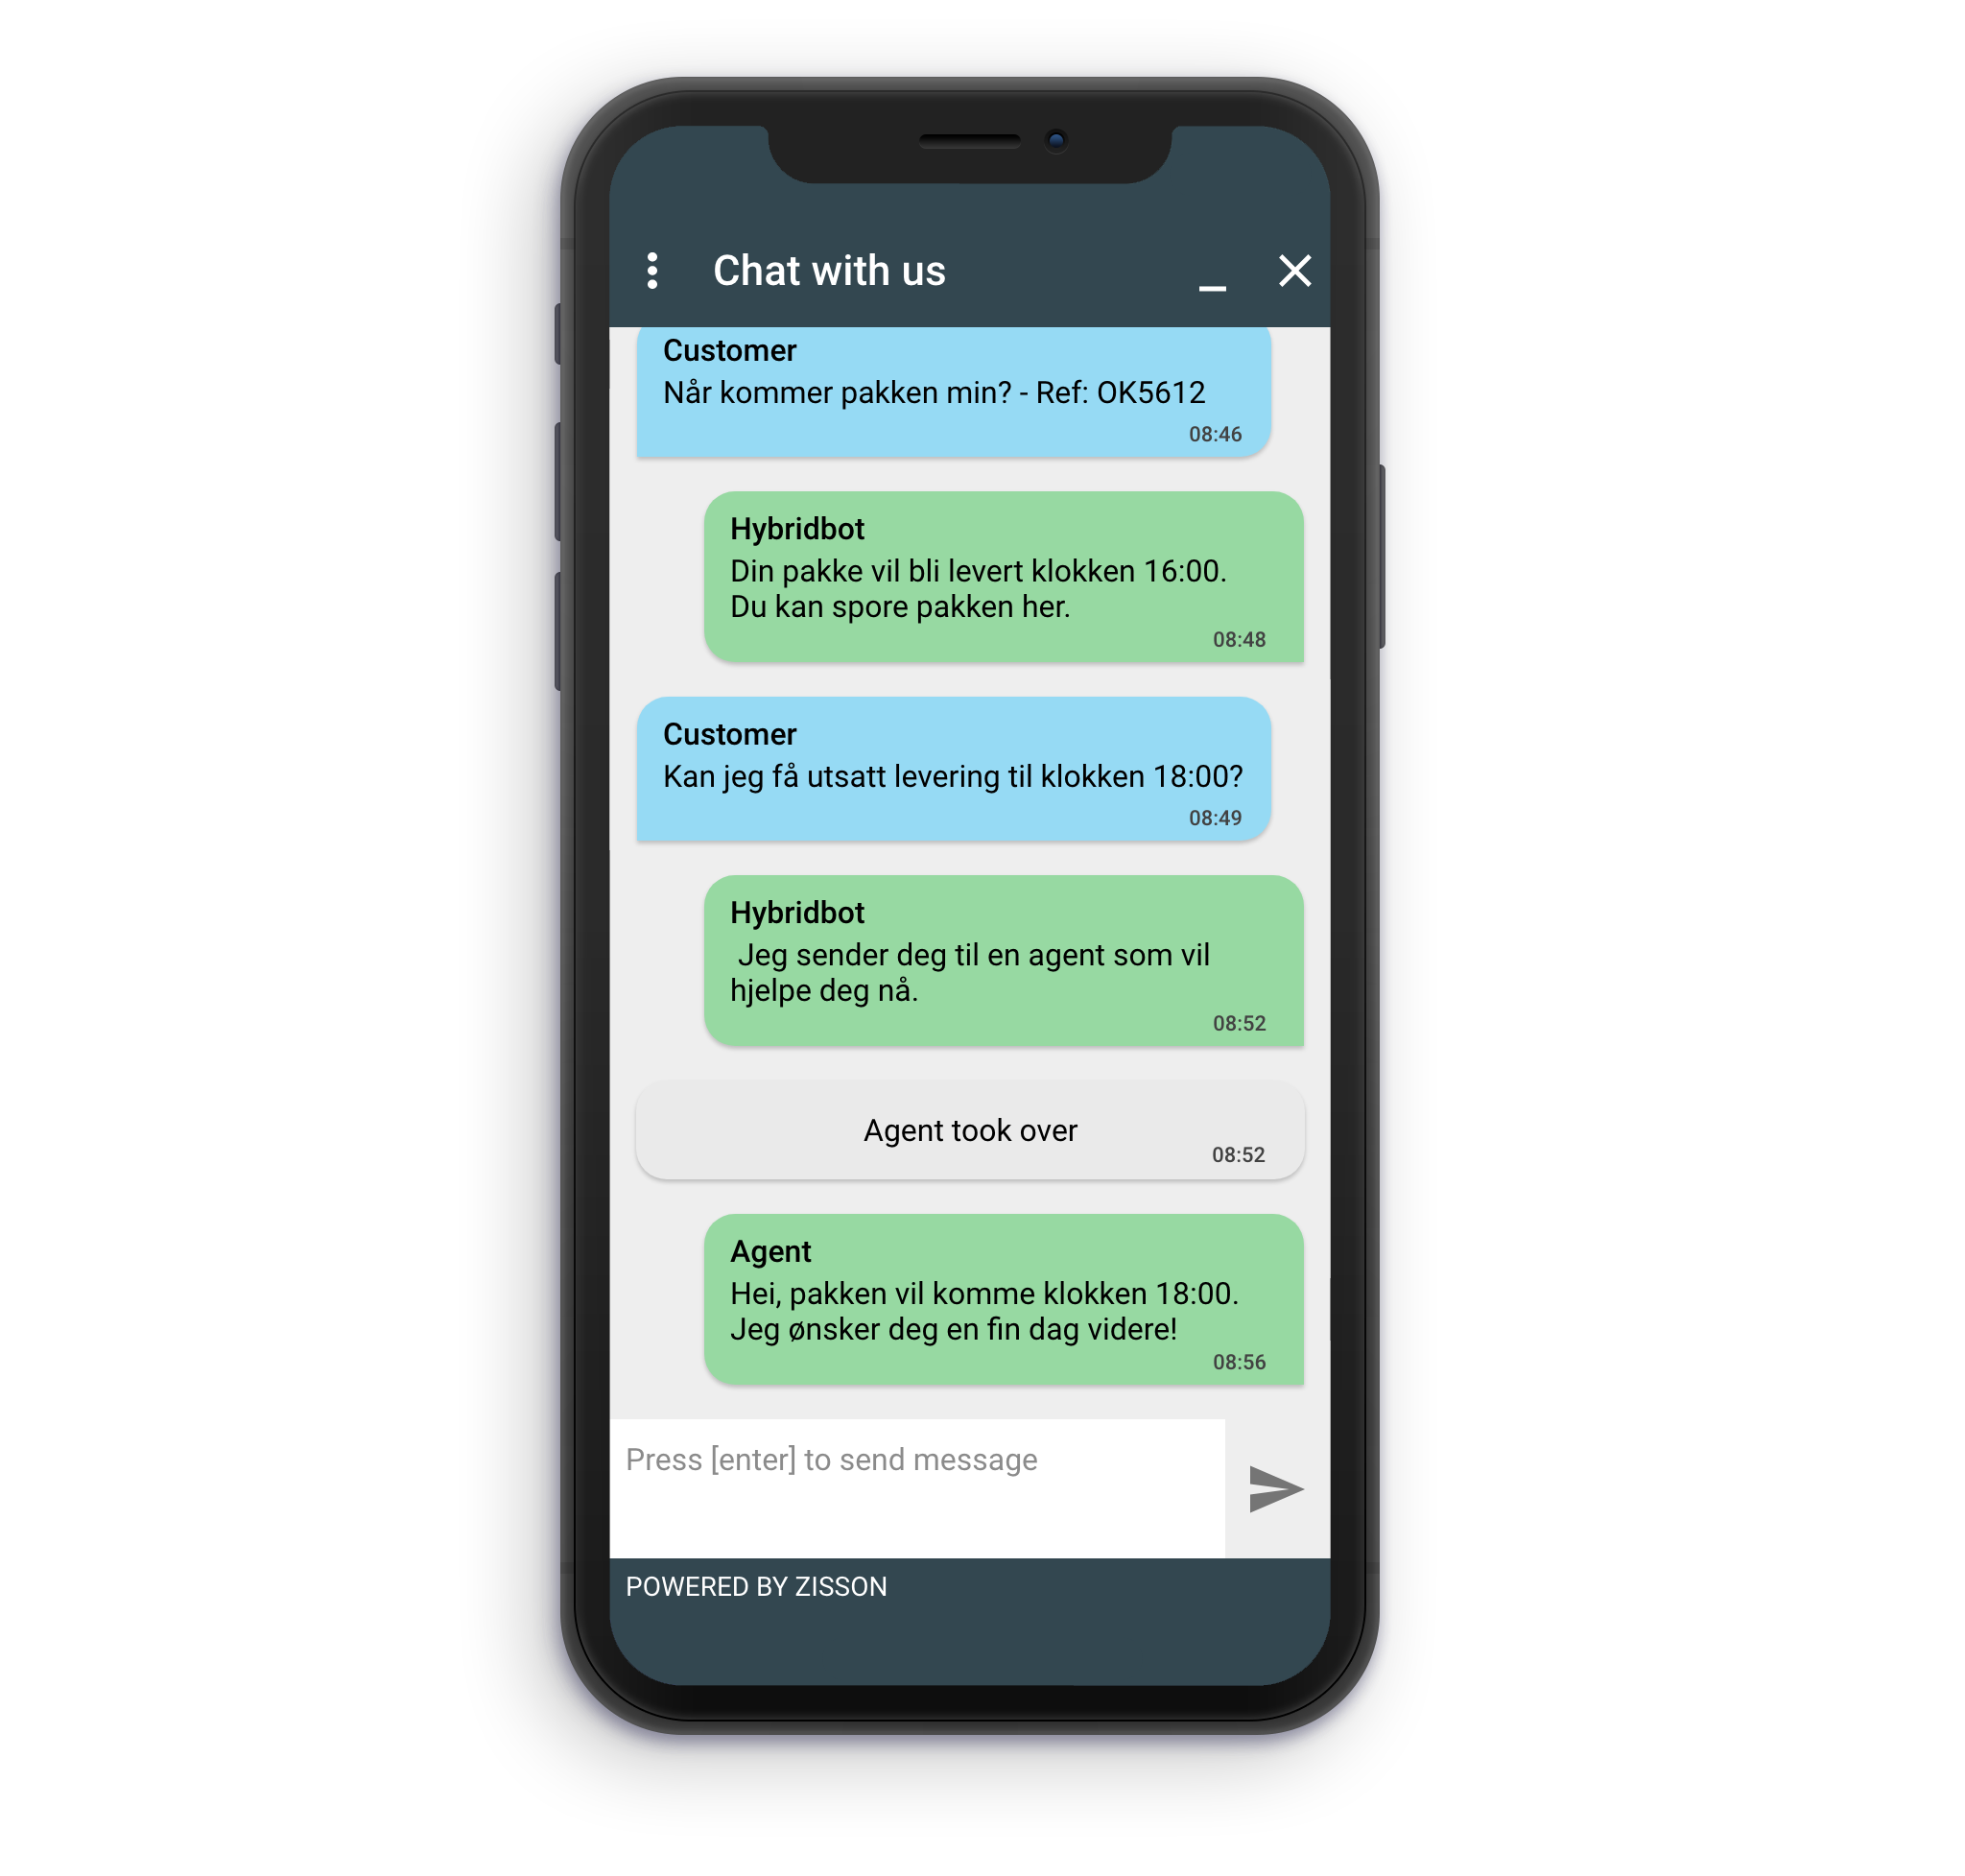 Iphone with chatbot conversation